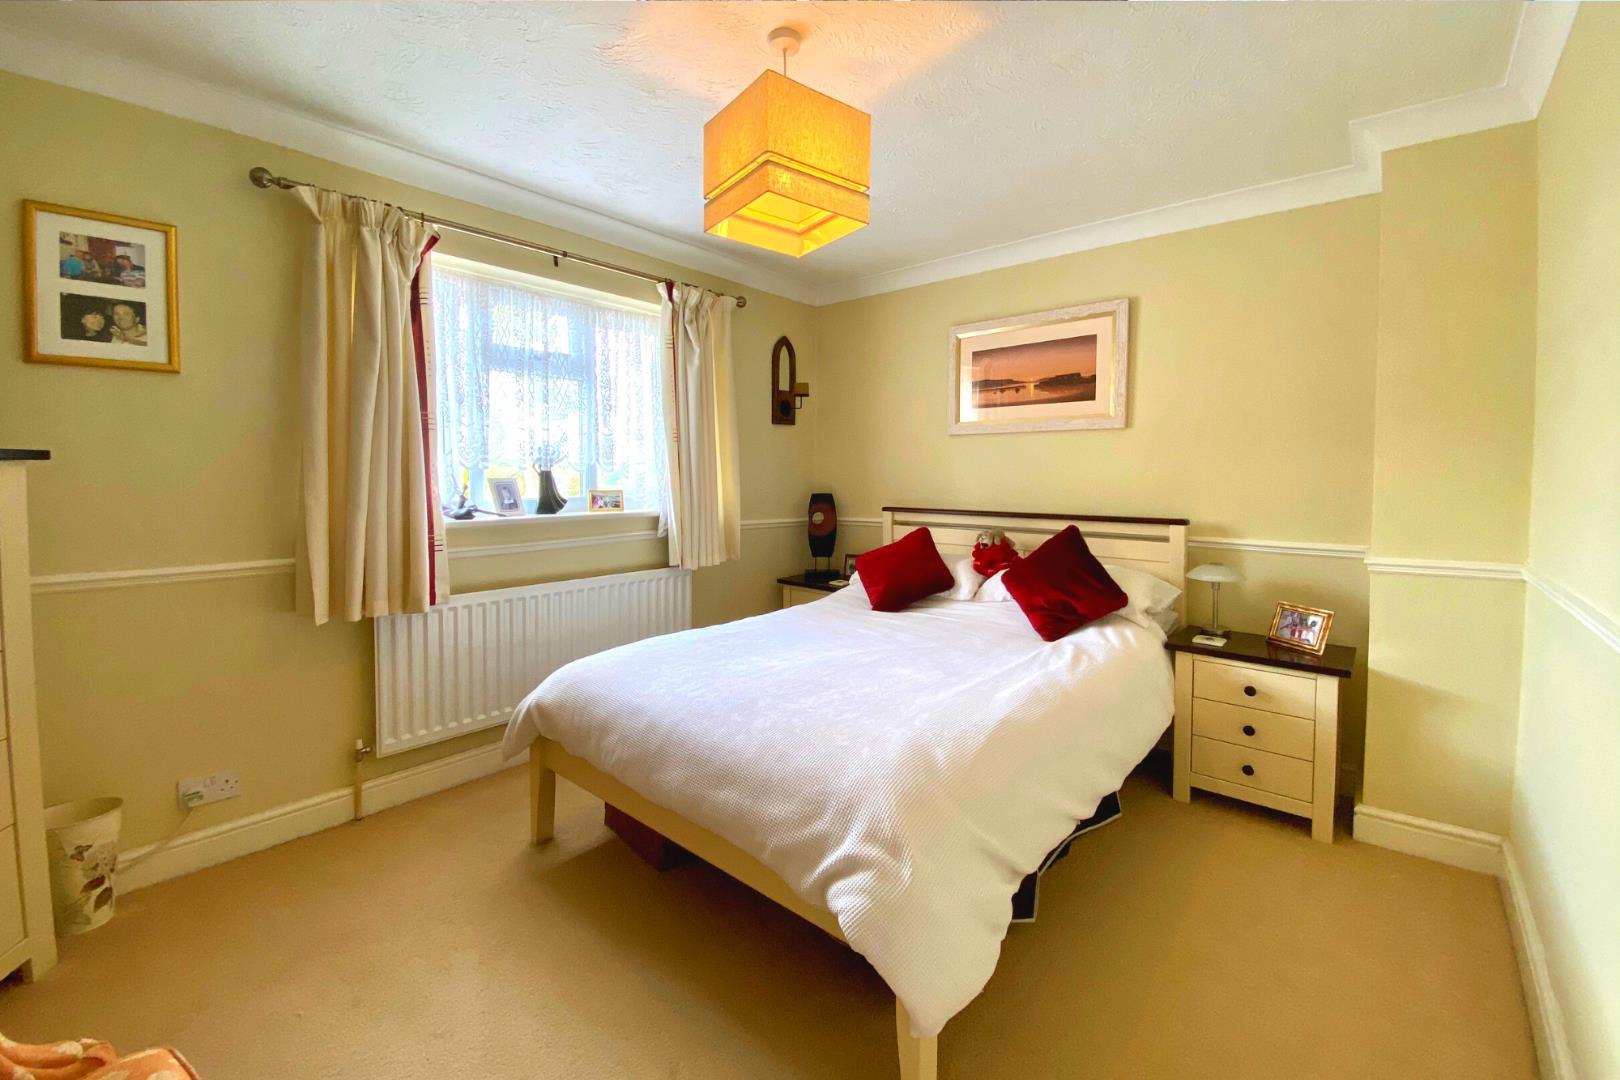 3 bed house for sale in Church Crookham  - Property Image 7